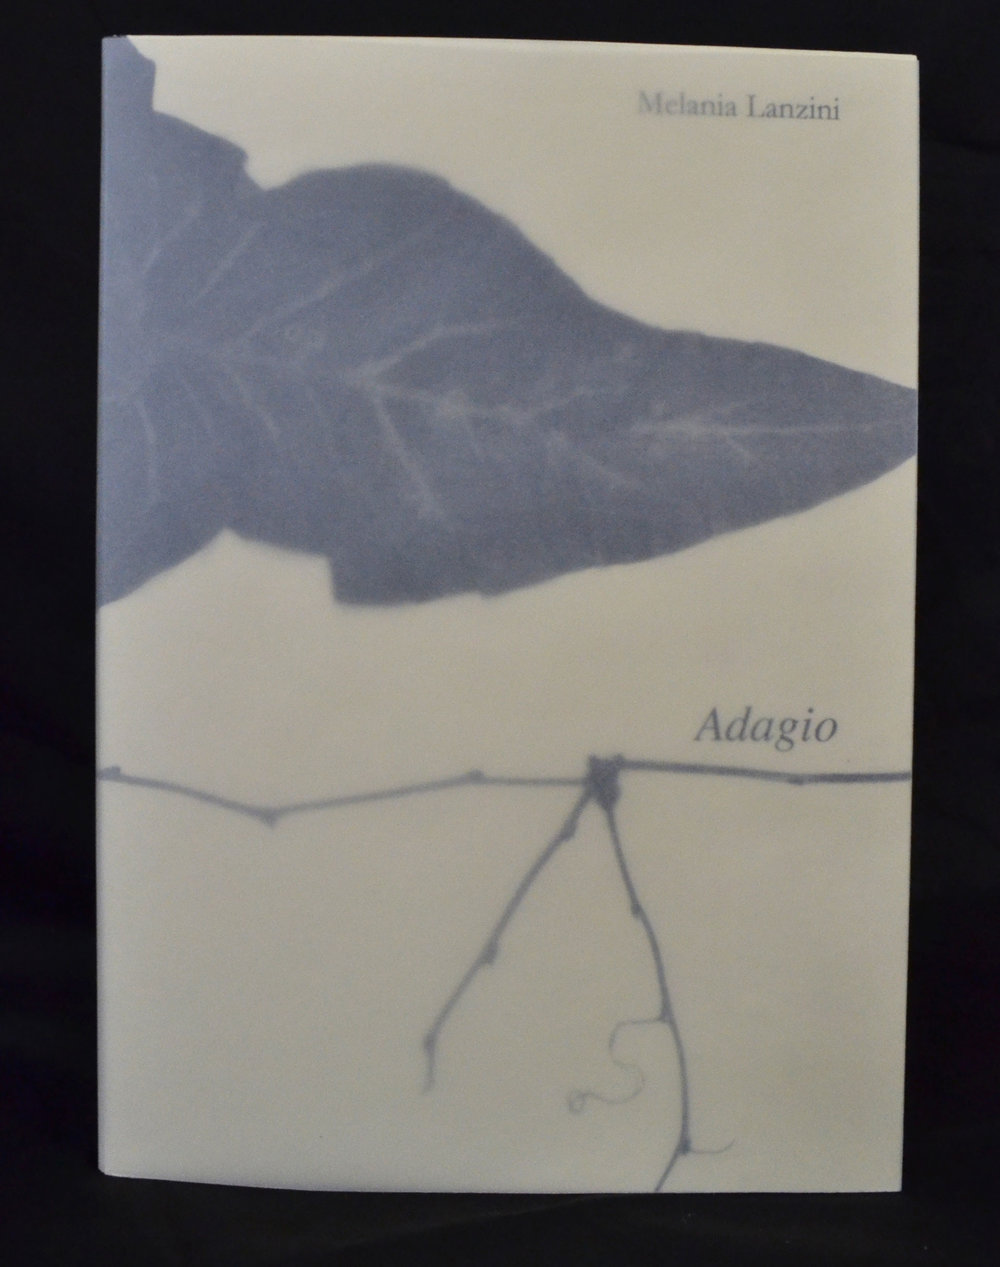 Melania Lanzini, Adagio, Risograph, monotype, drawings 2016, $250, Florence, IT